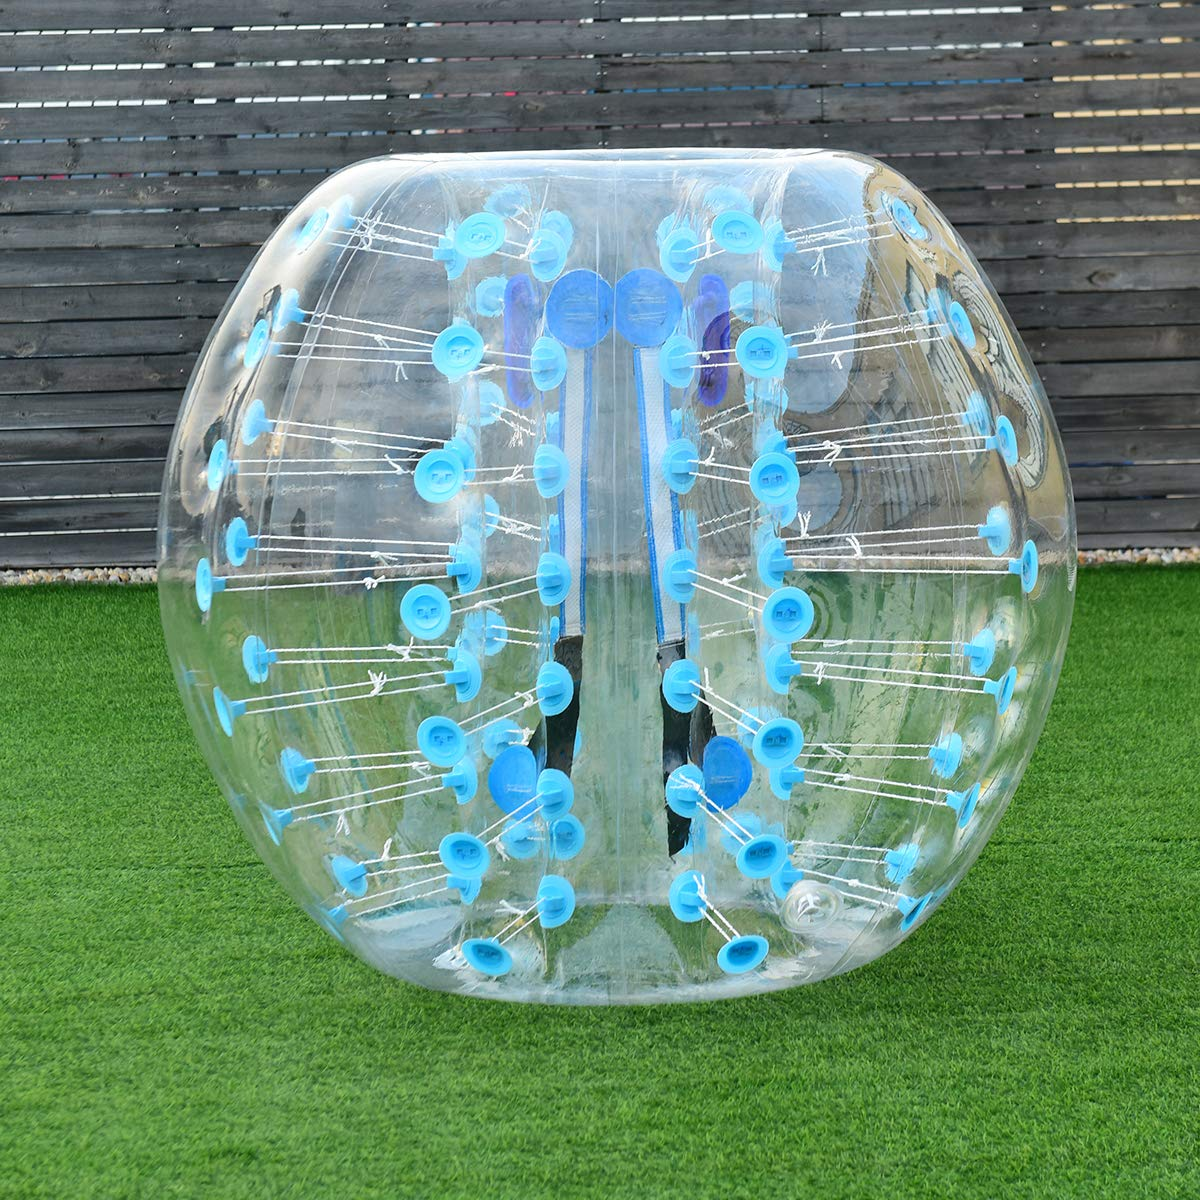 Costzon Inflatable Bumper Soccer Ball, Dia 5ft (1.5m) Giant Human Hamster Bubble Ball, 8mm Thickness Transparent PVC Zorb Ball for Kids, Teens Outdoor Team Gaming Play (Light Blue) by Costzon (Image #9)